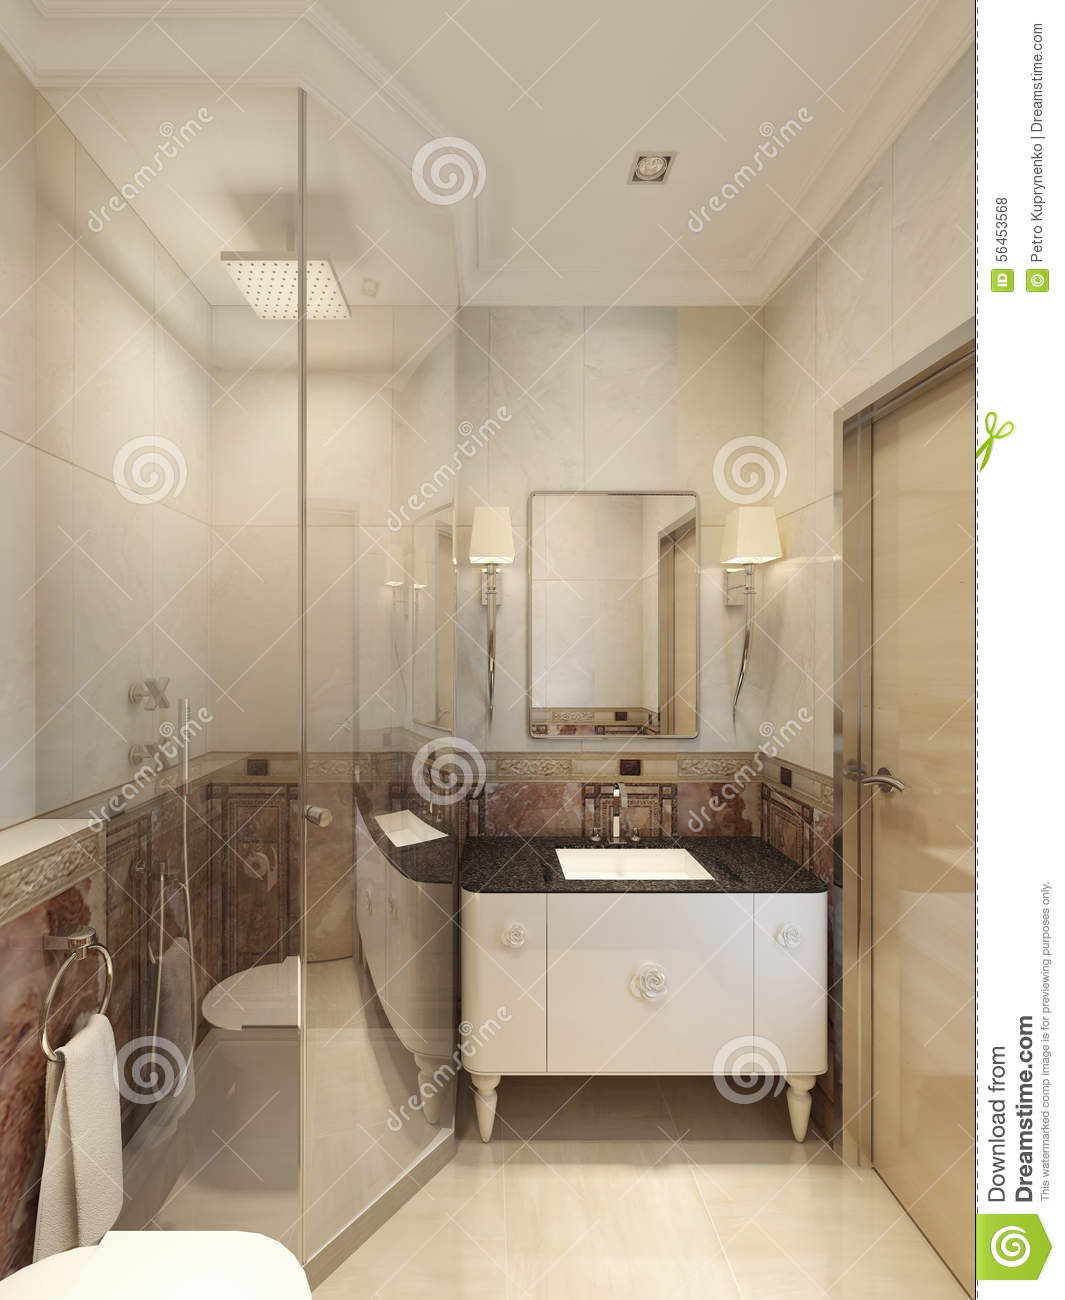 Neoclassical bathroom interior stock photo image 56453568 for Neoclassical bathroom designs